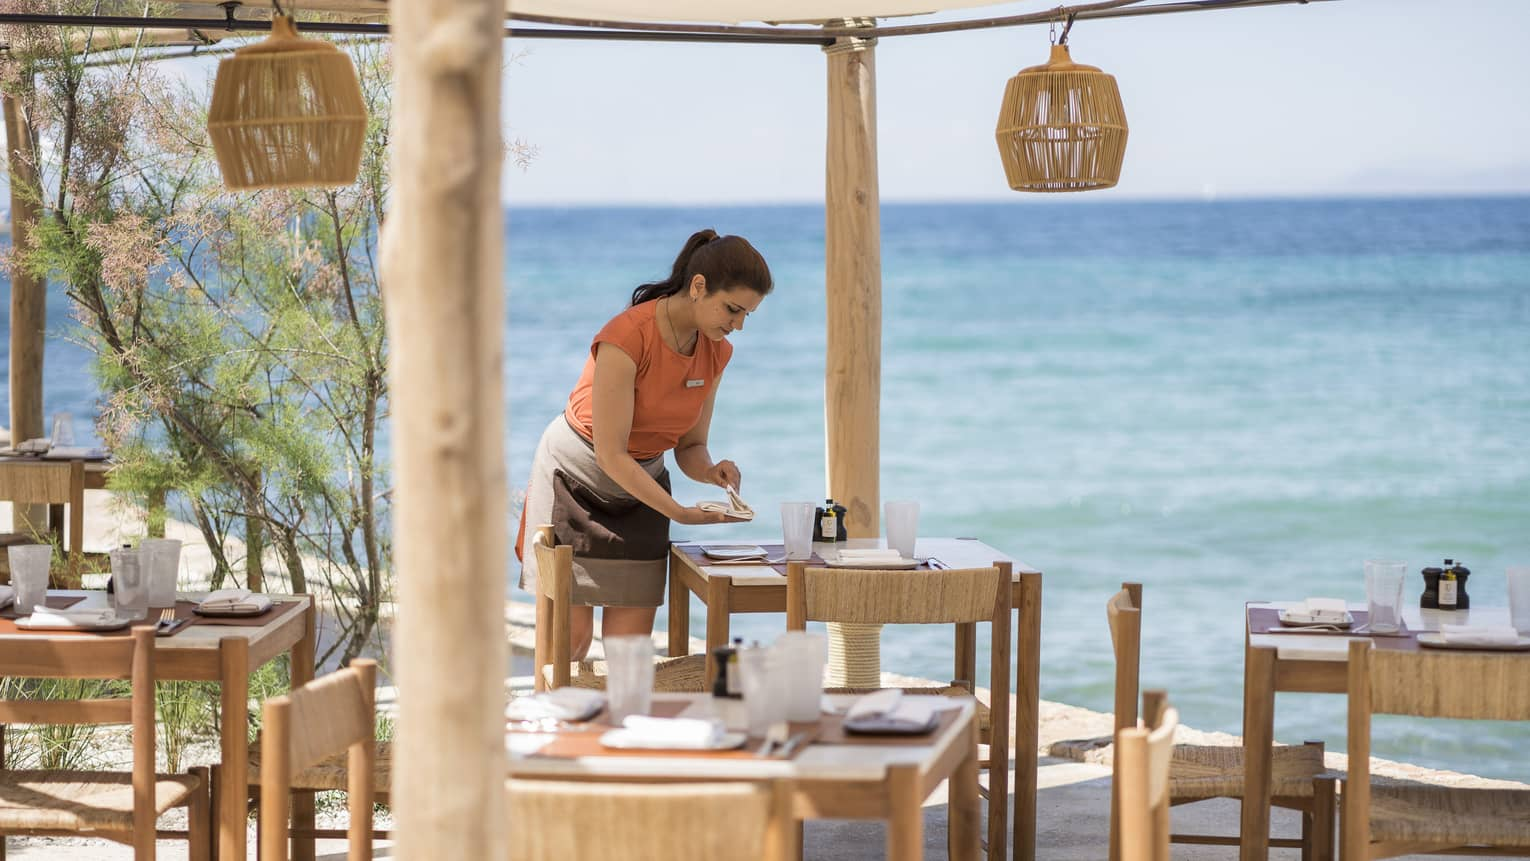 Woman in orange top sets wooden table at outdoor Taverna with wooden lanterns by ocean